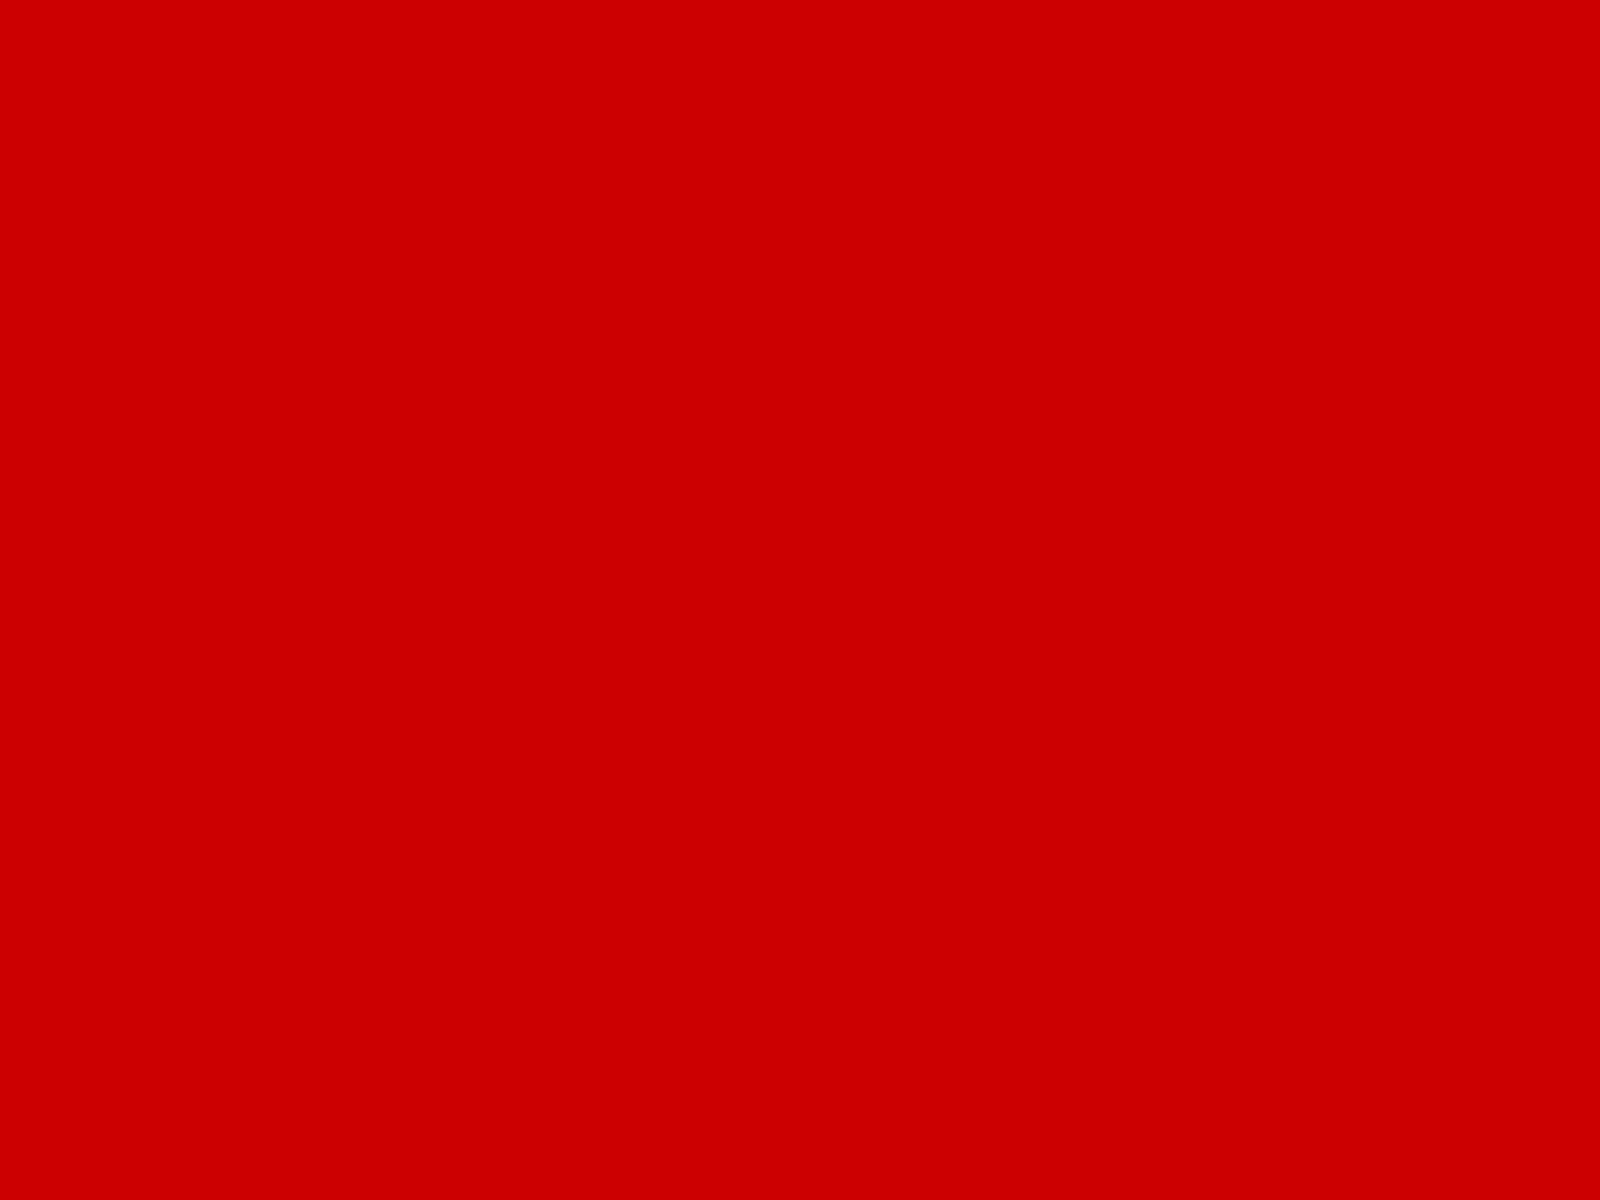 1600x1200 Boston University Red Solid Color Background